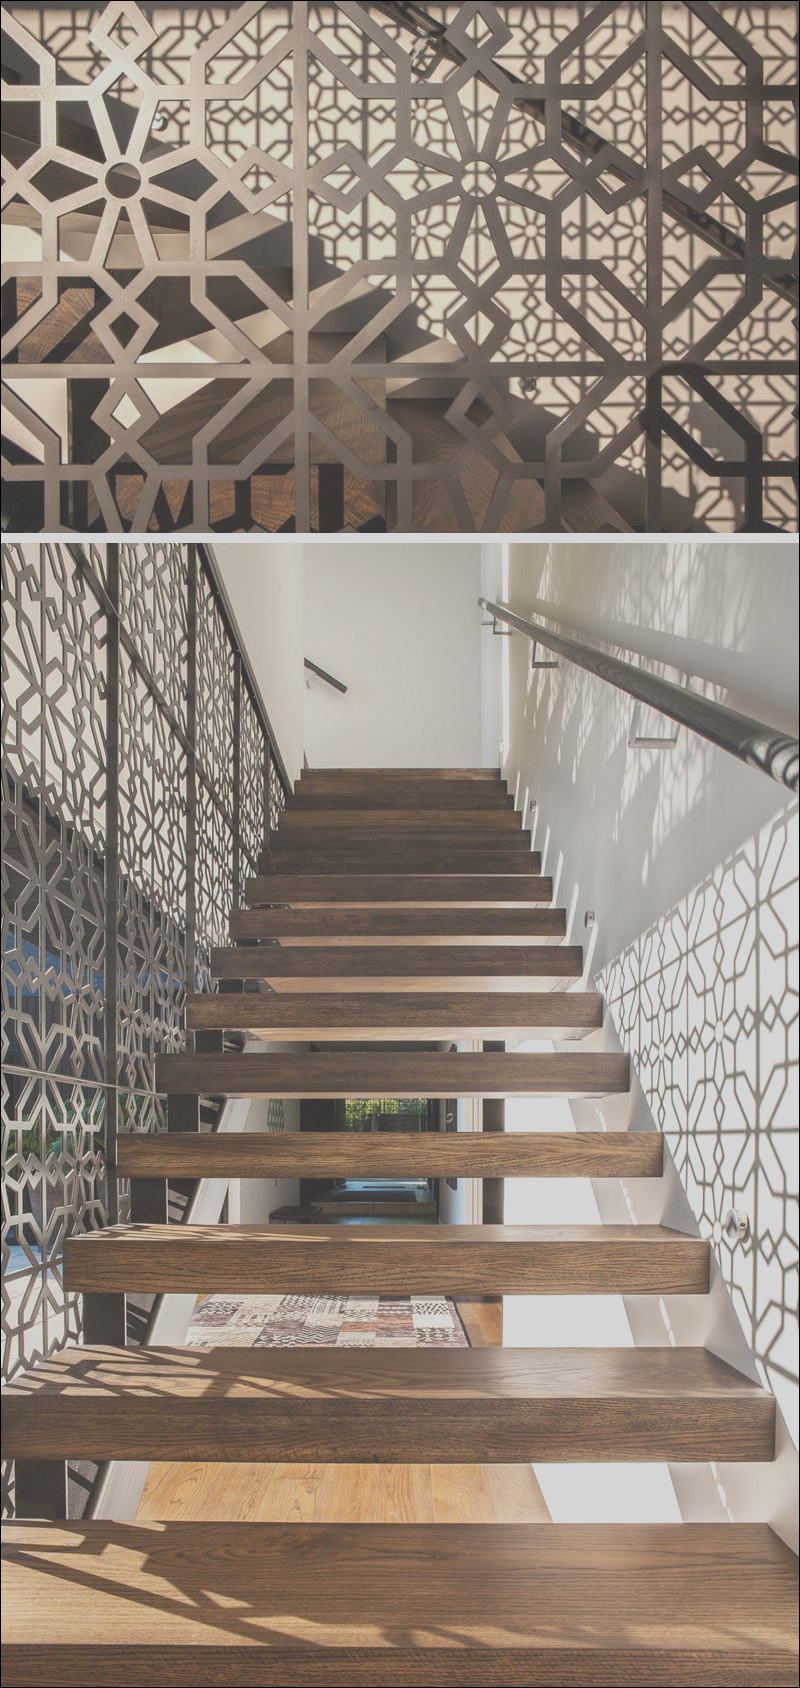 11 creative stair railings